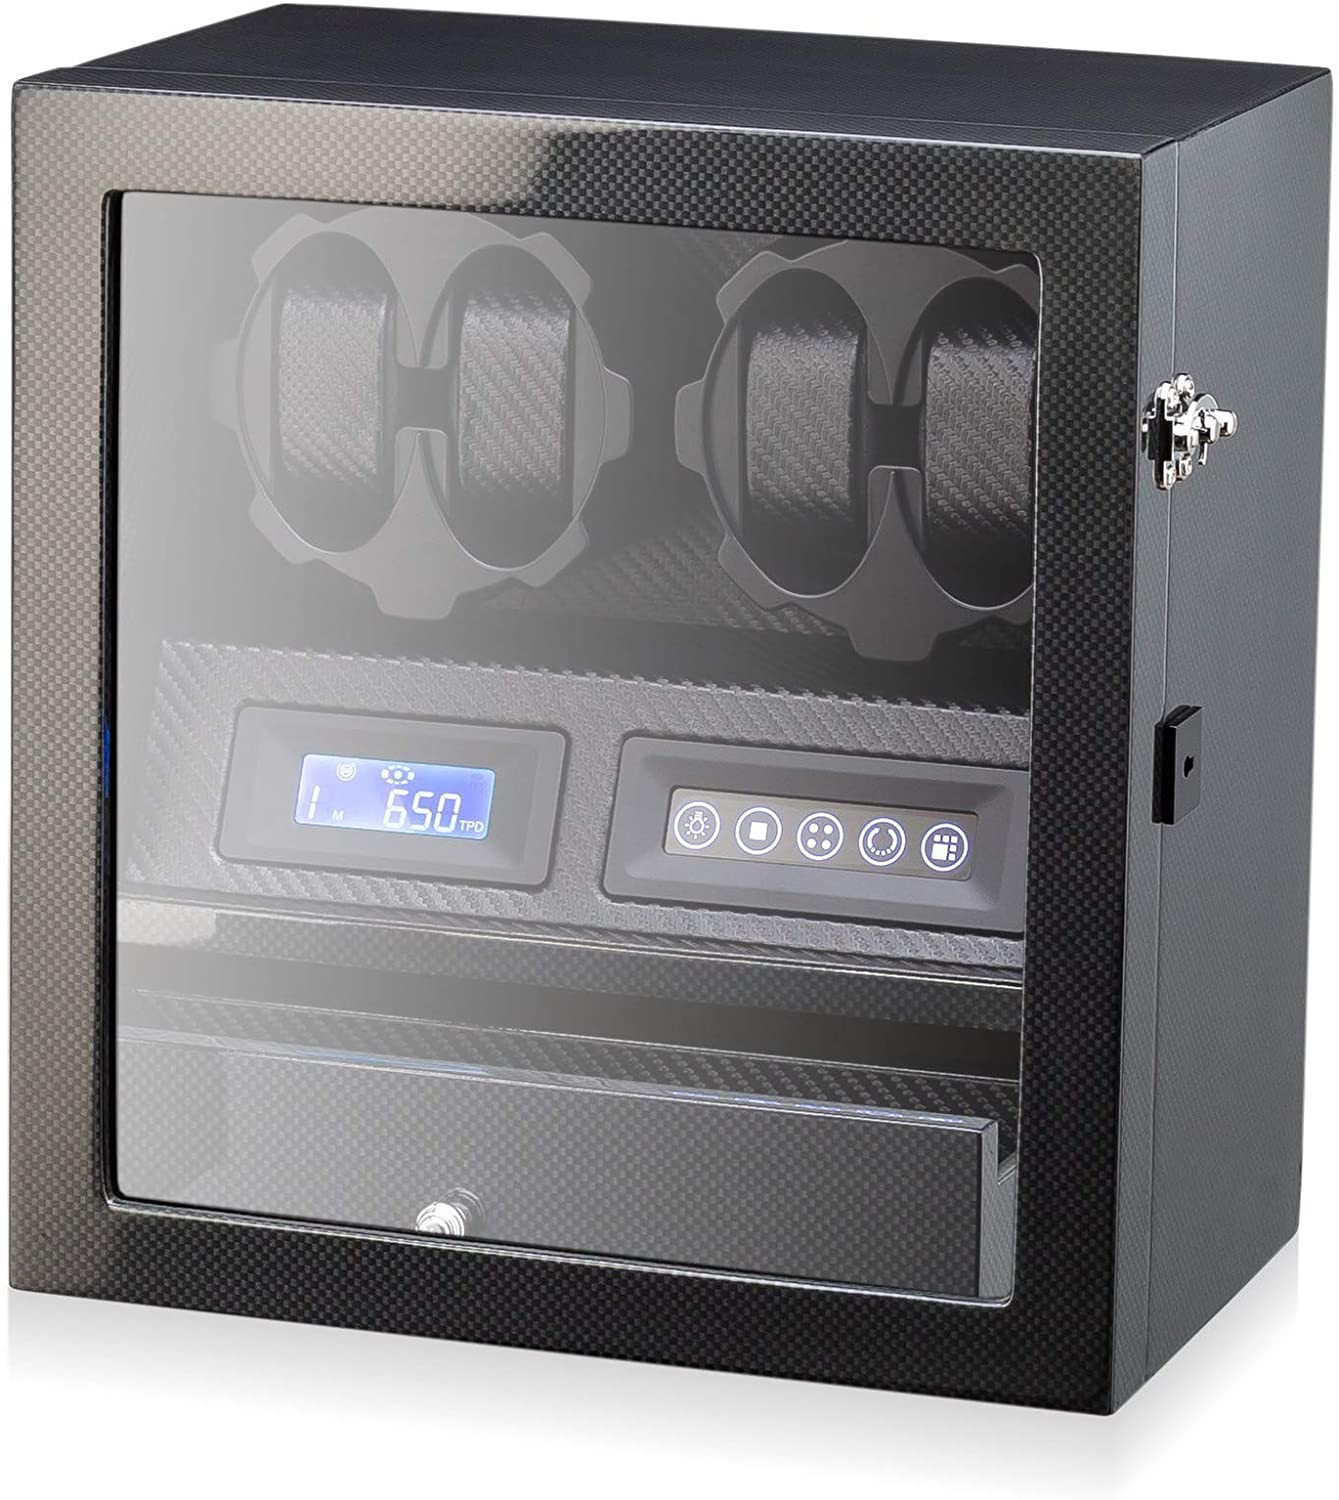 4 Watch Winder with 5 Watch Storage Space, LCD Display, Touch Control and Interior Backlight